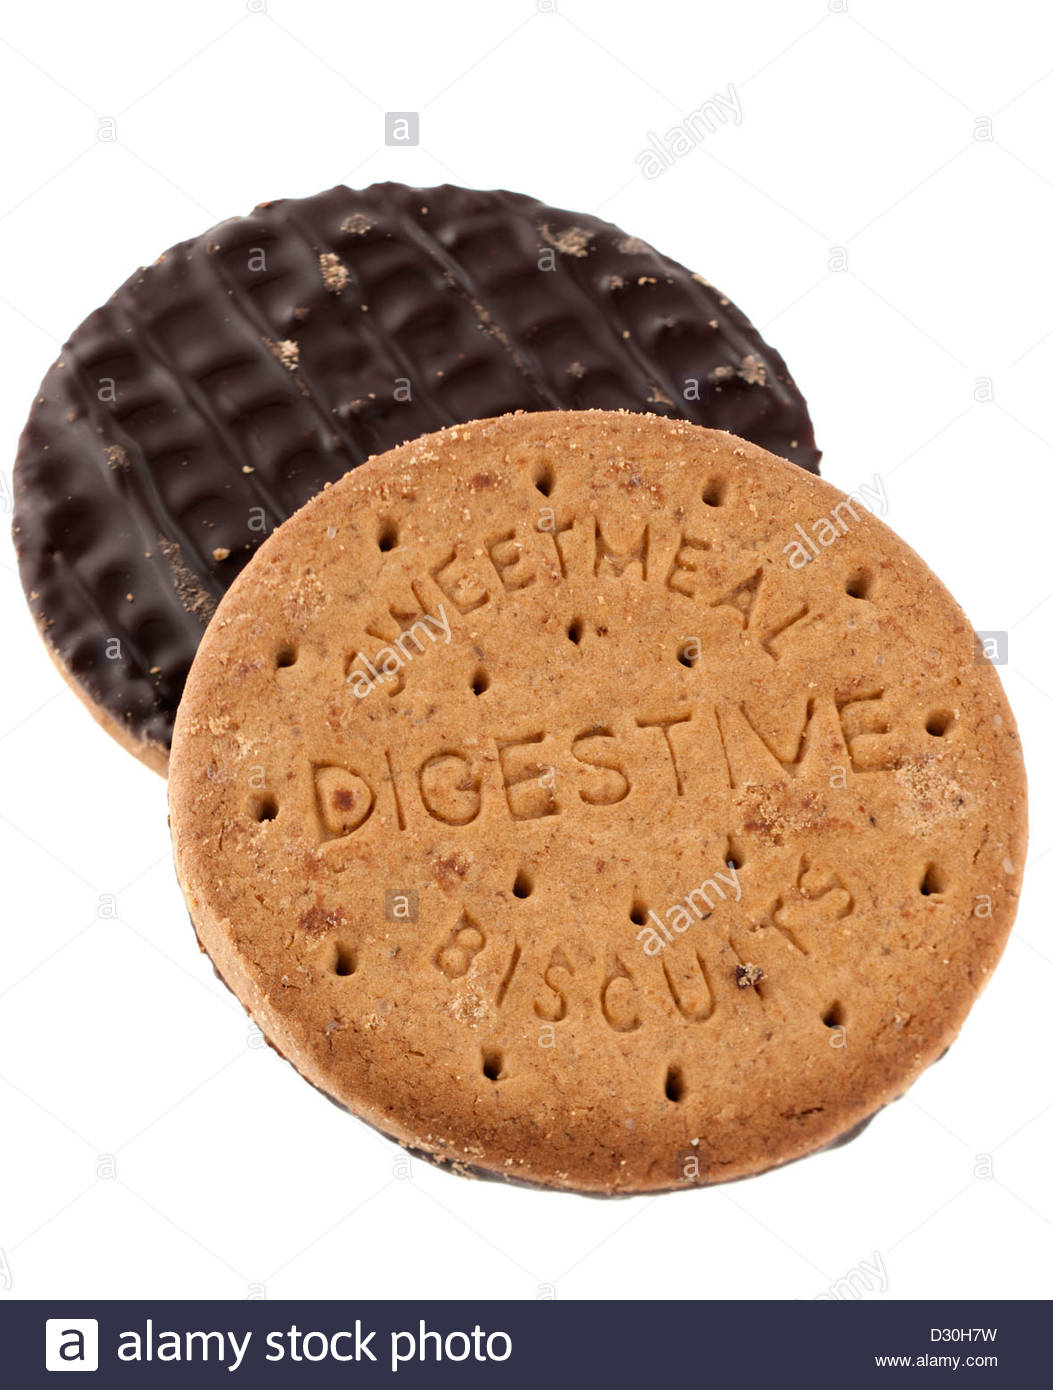 Two sweetmeal digestive biscuits half covered in dark chocolate